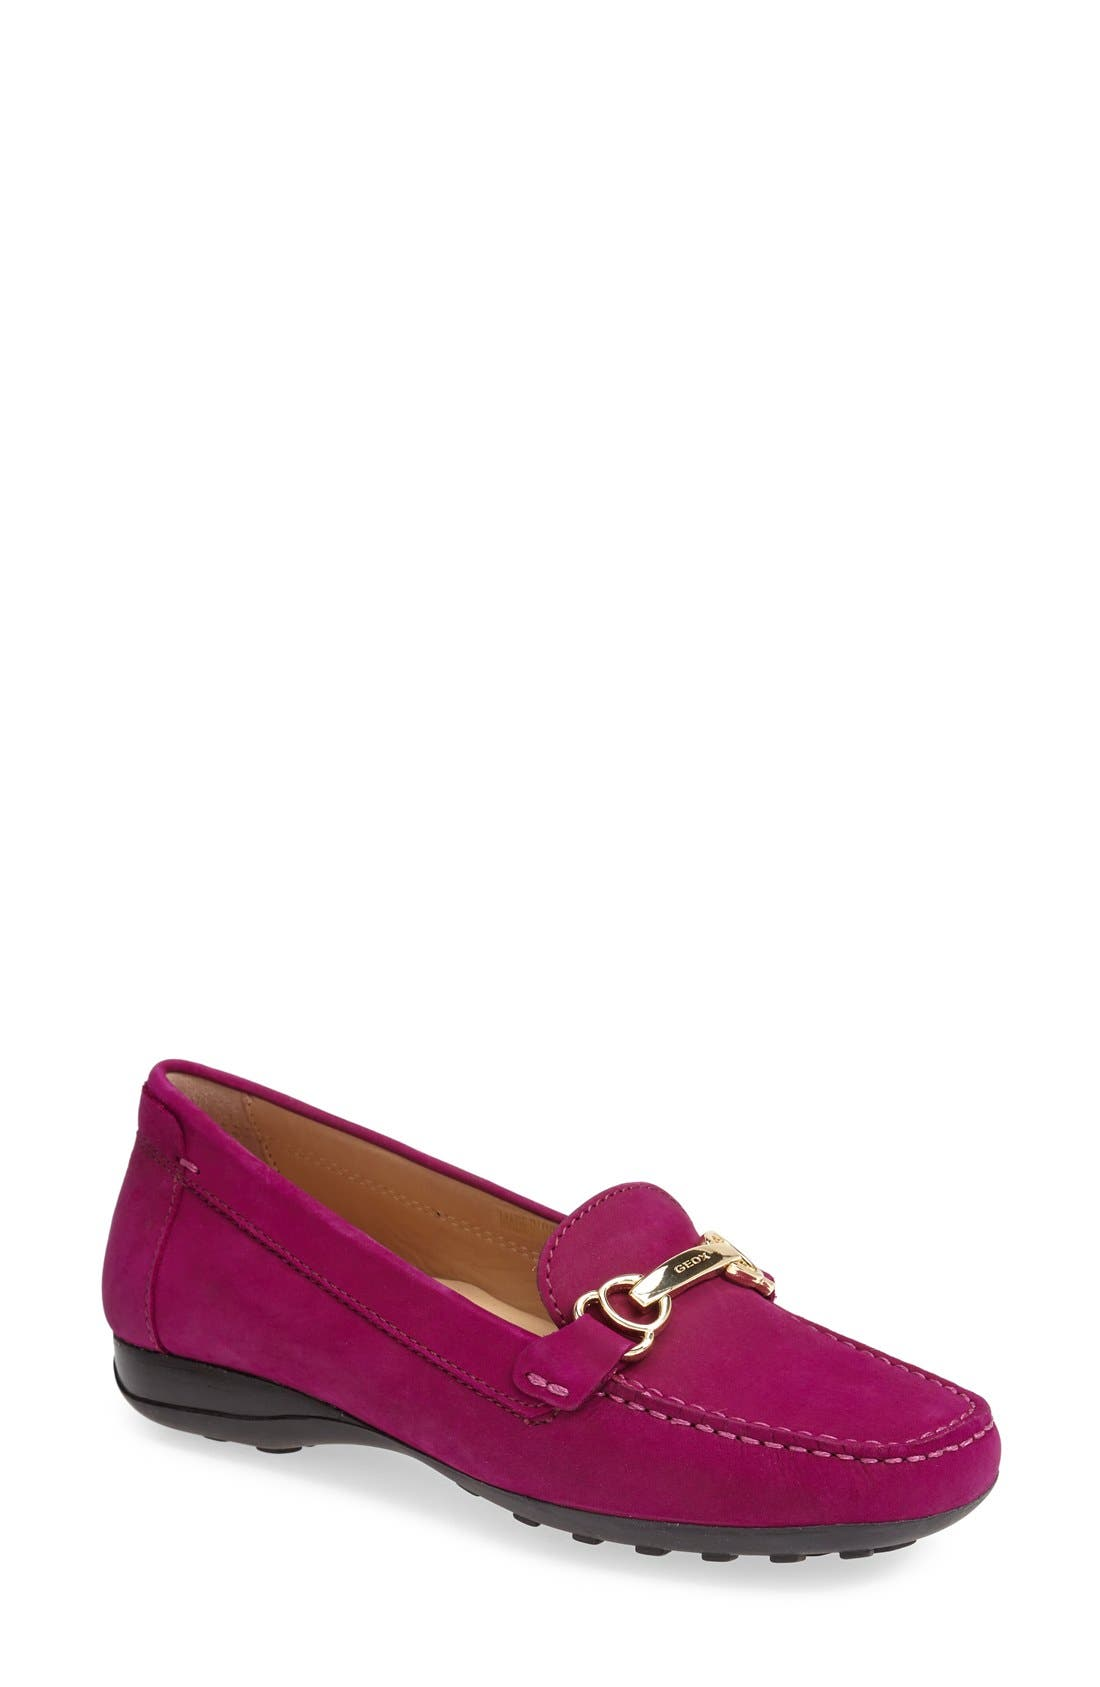 Euro 67 Loafer,                             Main thumbnail 8, color,